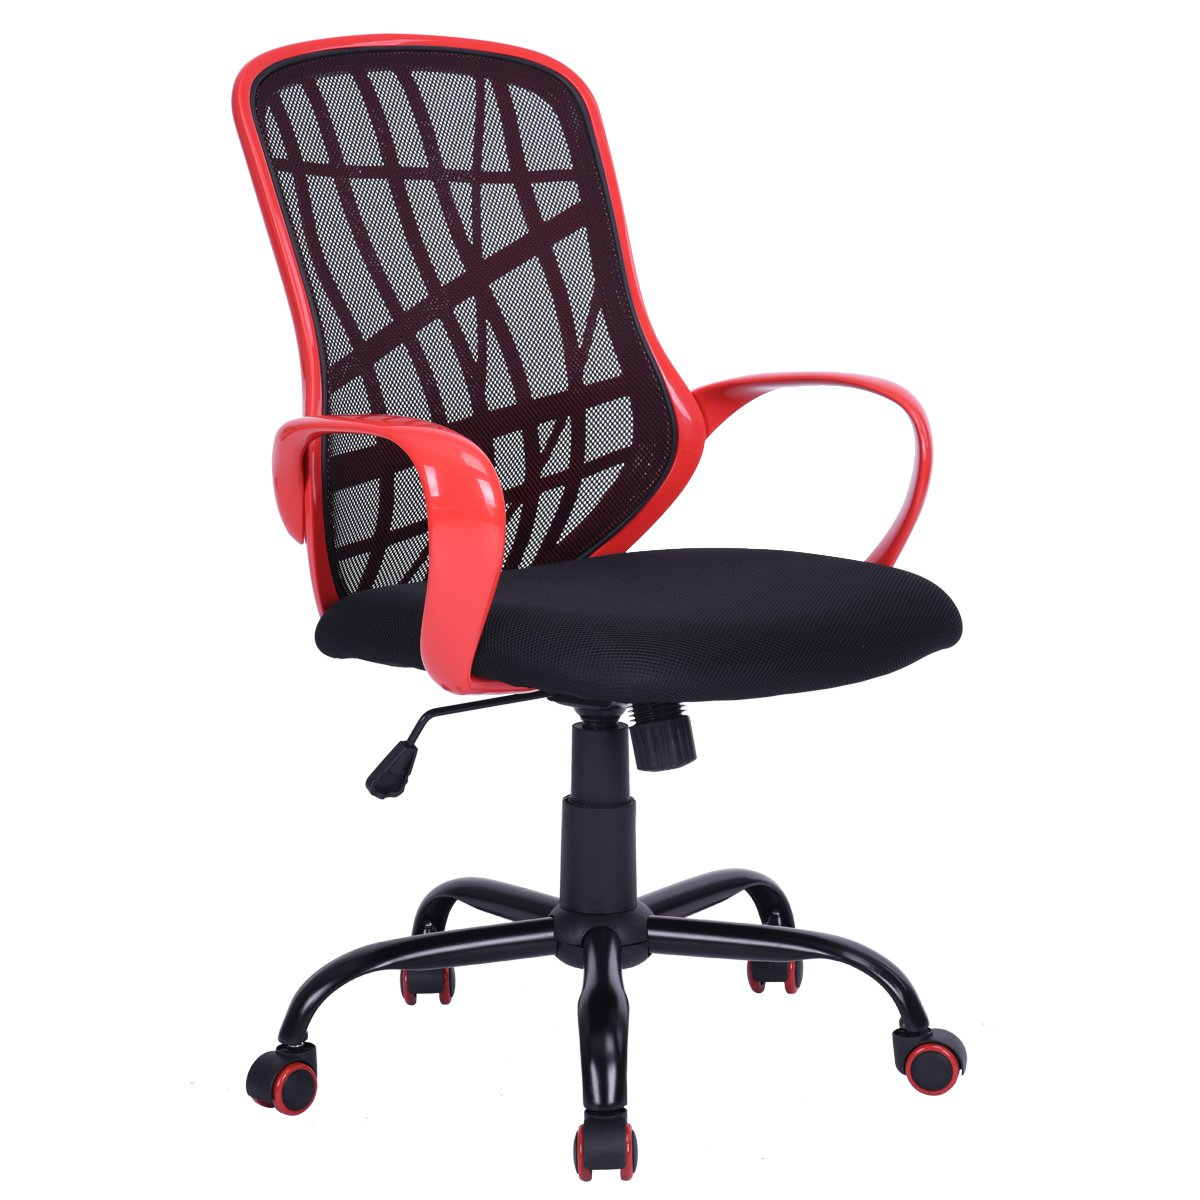 Red House in Box Mesh Office Chairs Ergonomic Swivel Computer Desk Chairs (White)